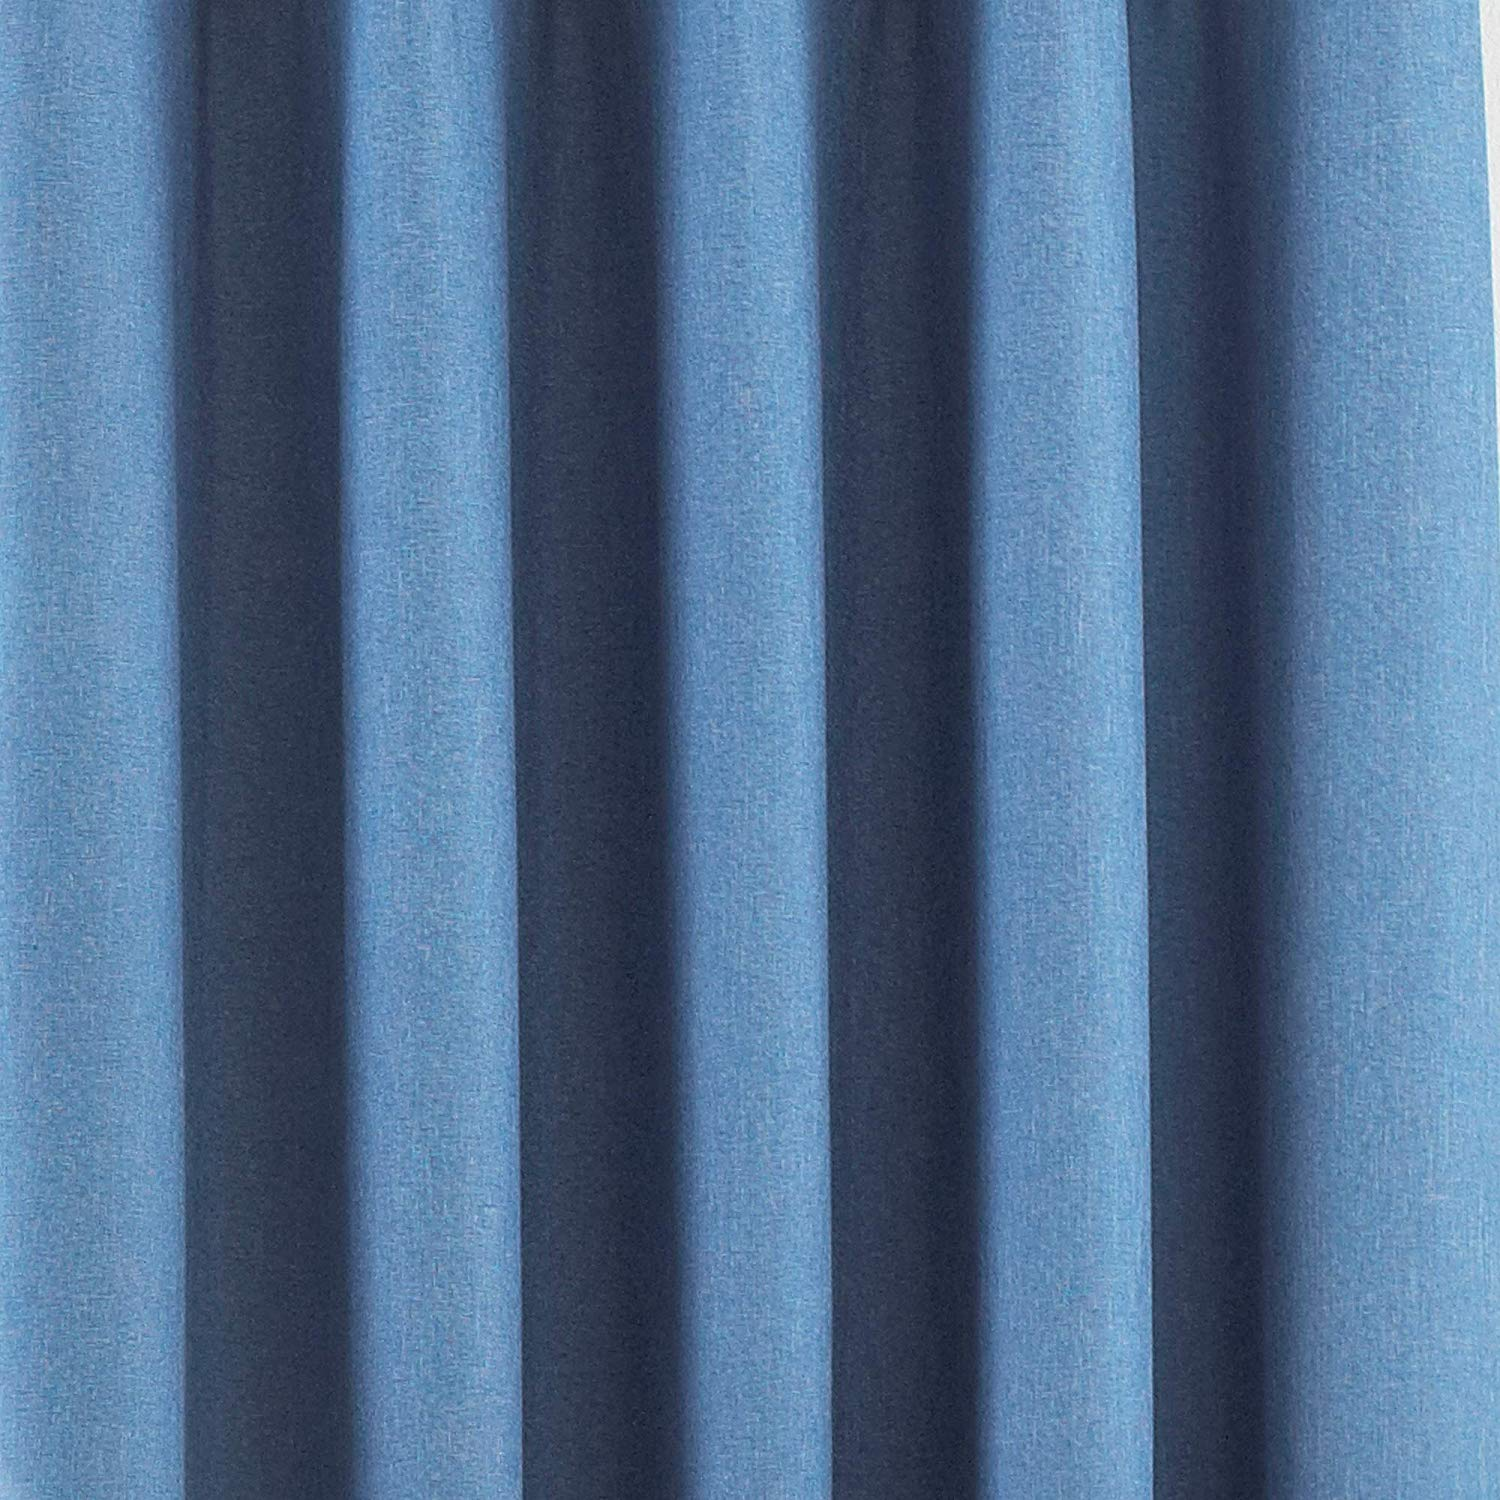 The Home Furnishings Company Denim Eyelet Blackout Curtains, Blind and Cushion